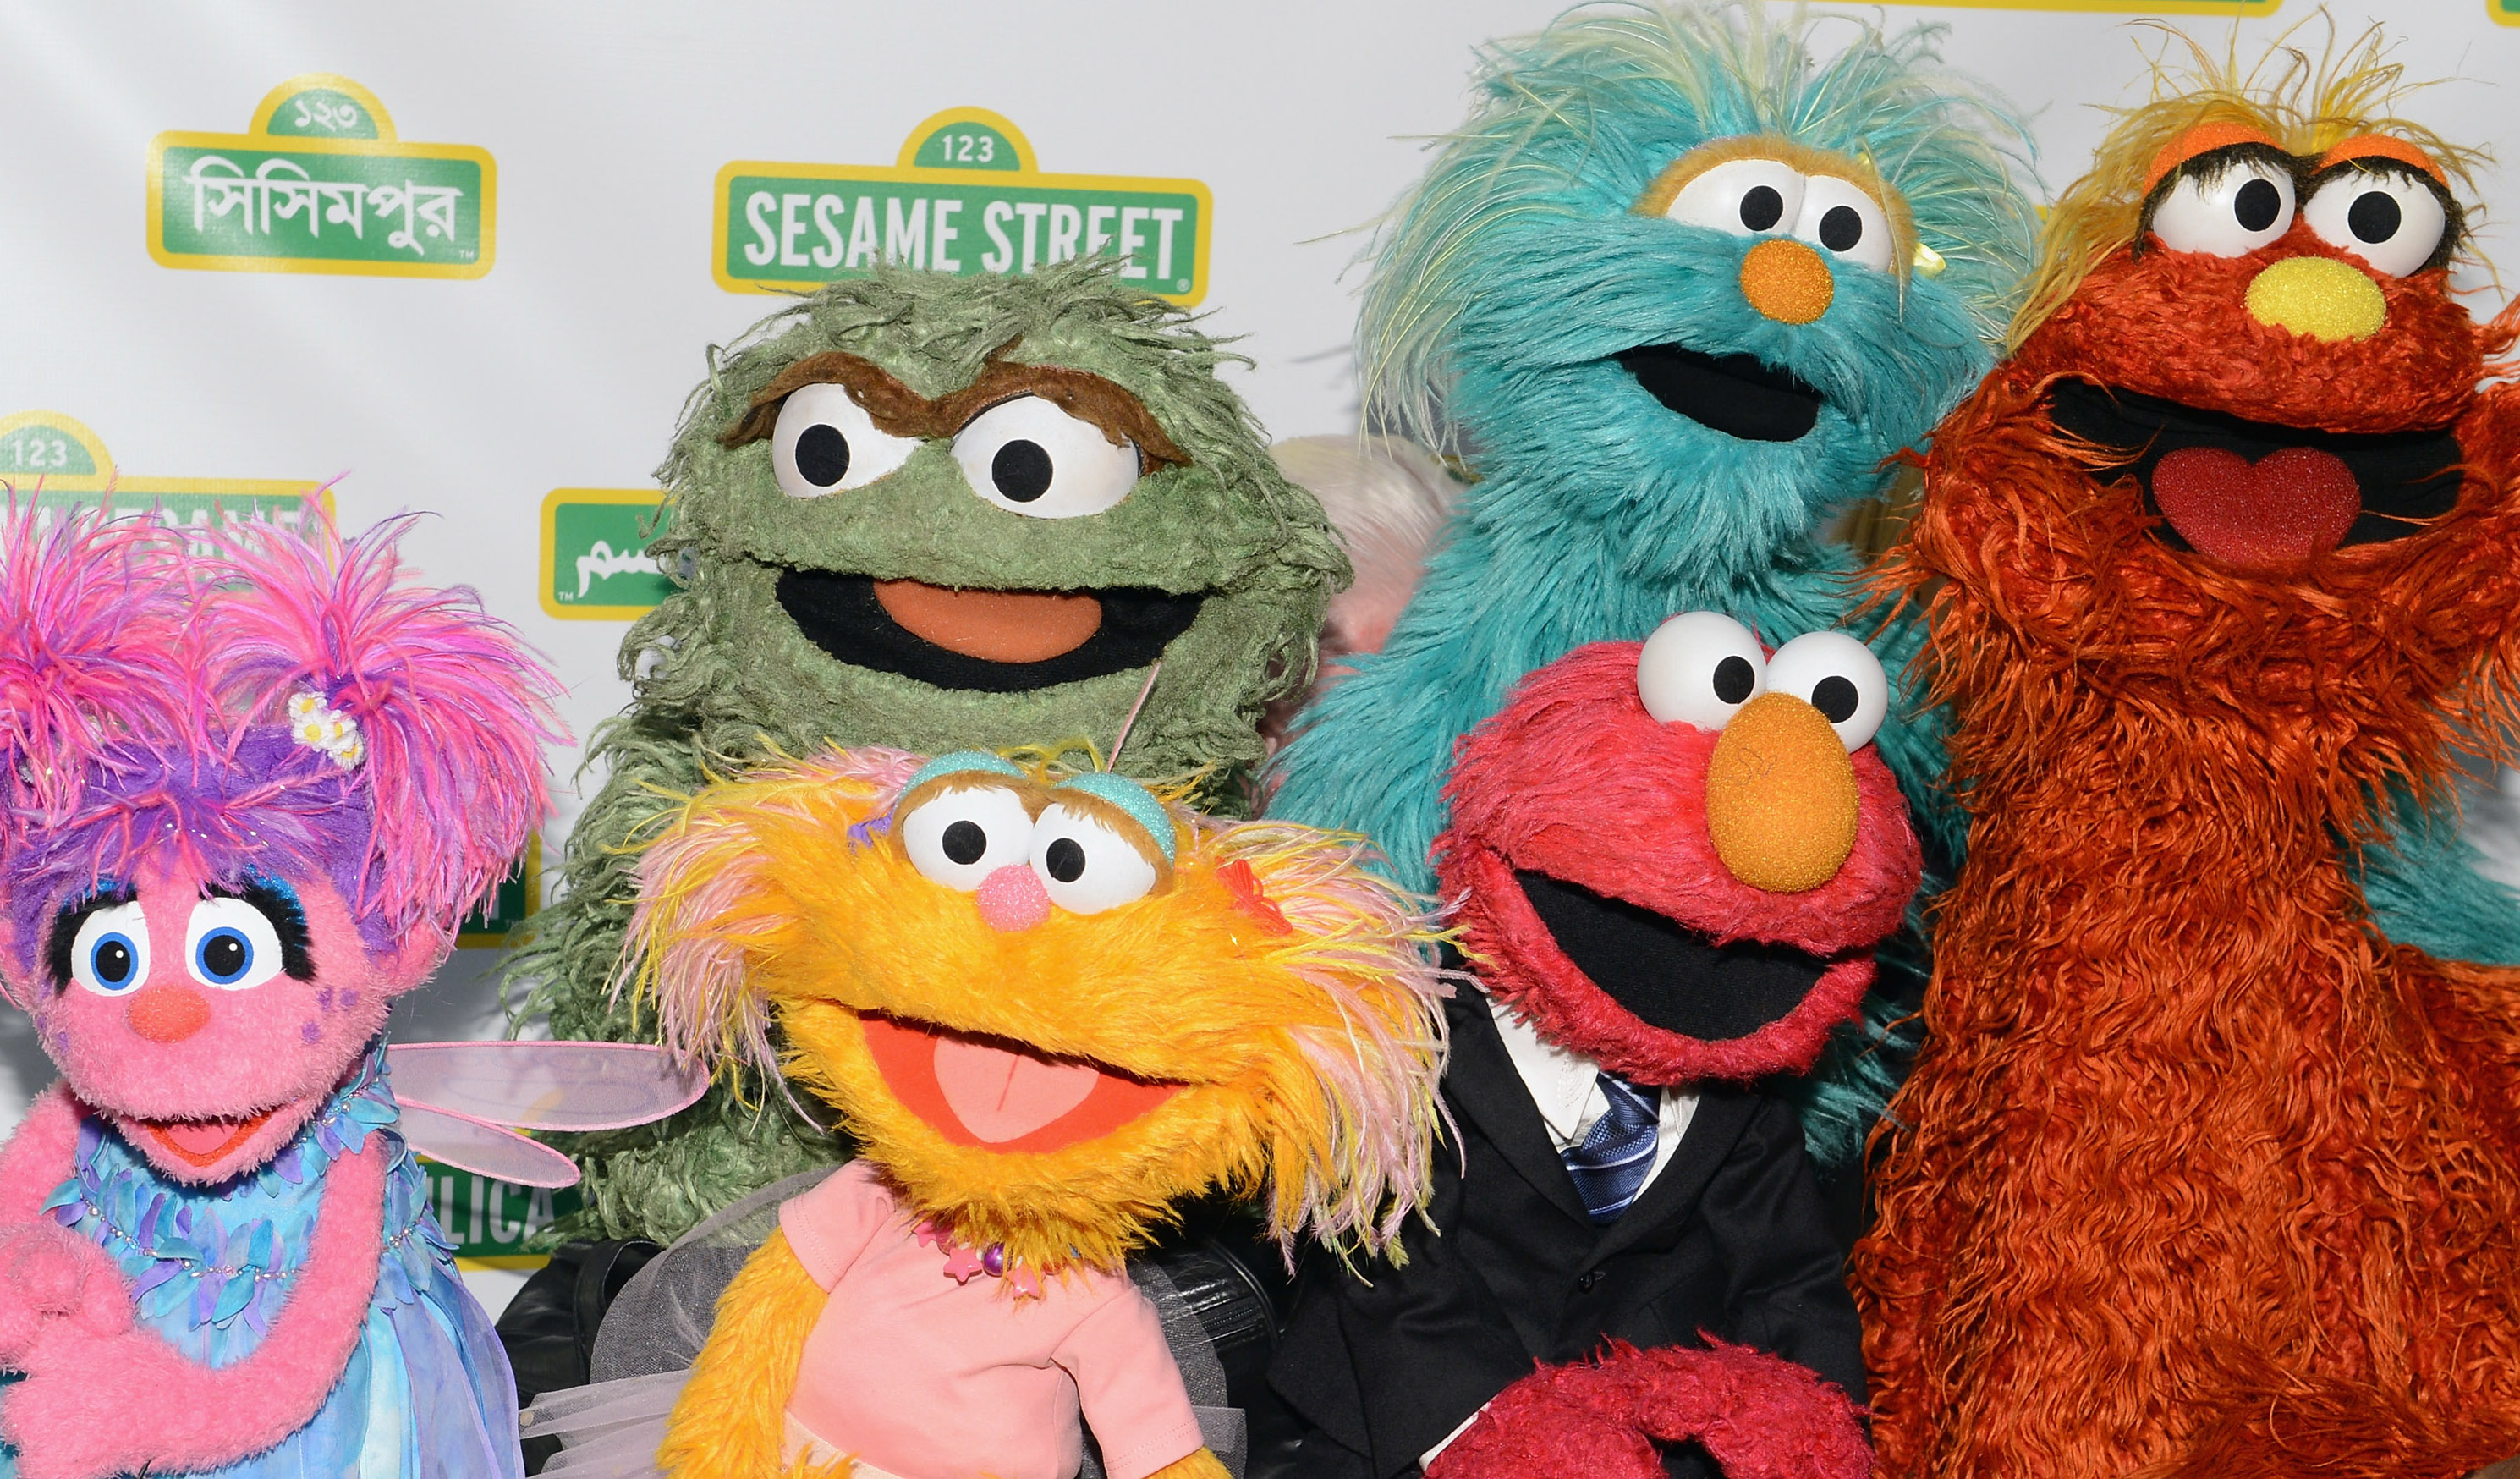 Muppets at a charity event in New York City in 2012.